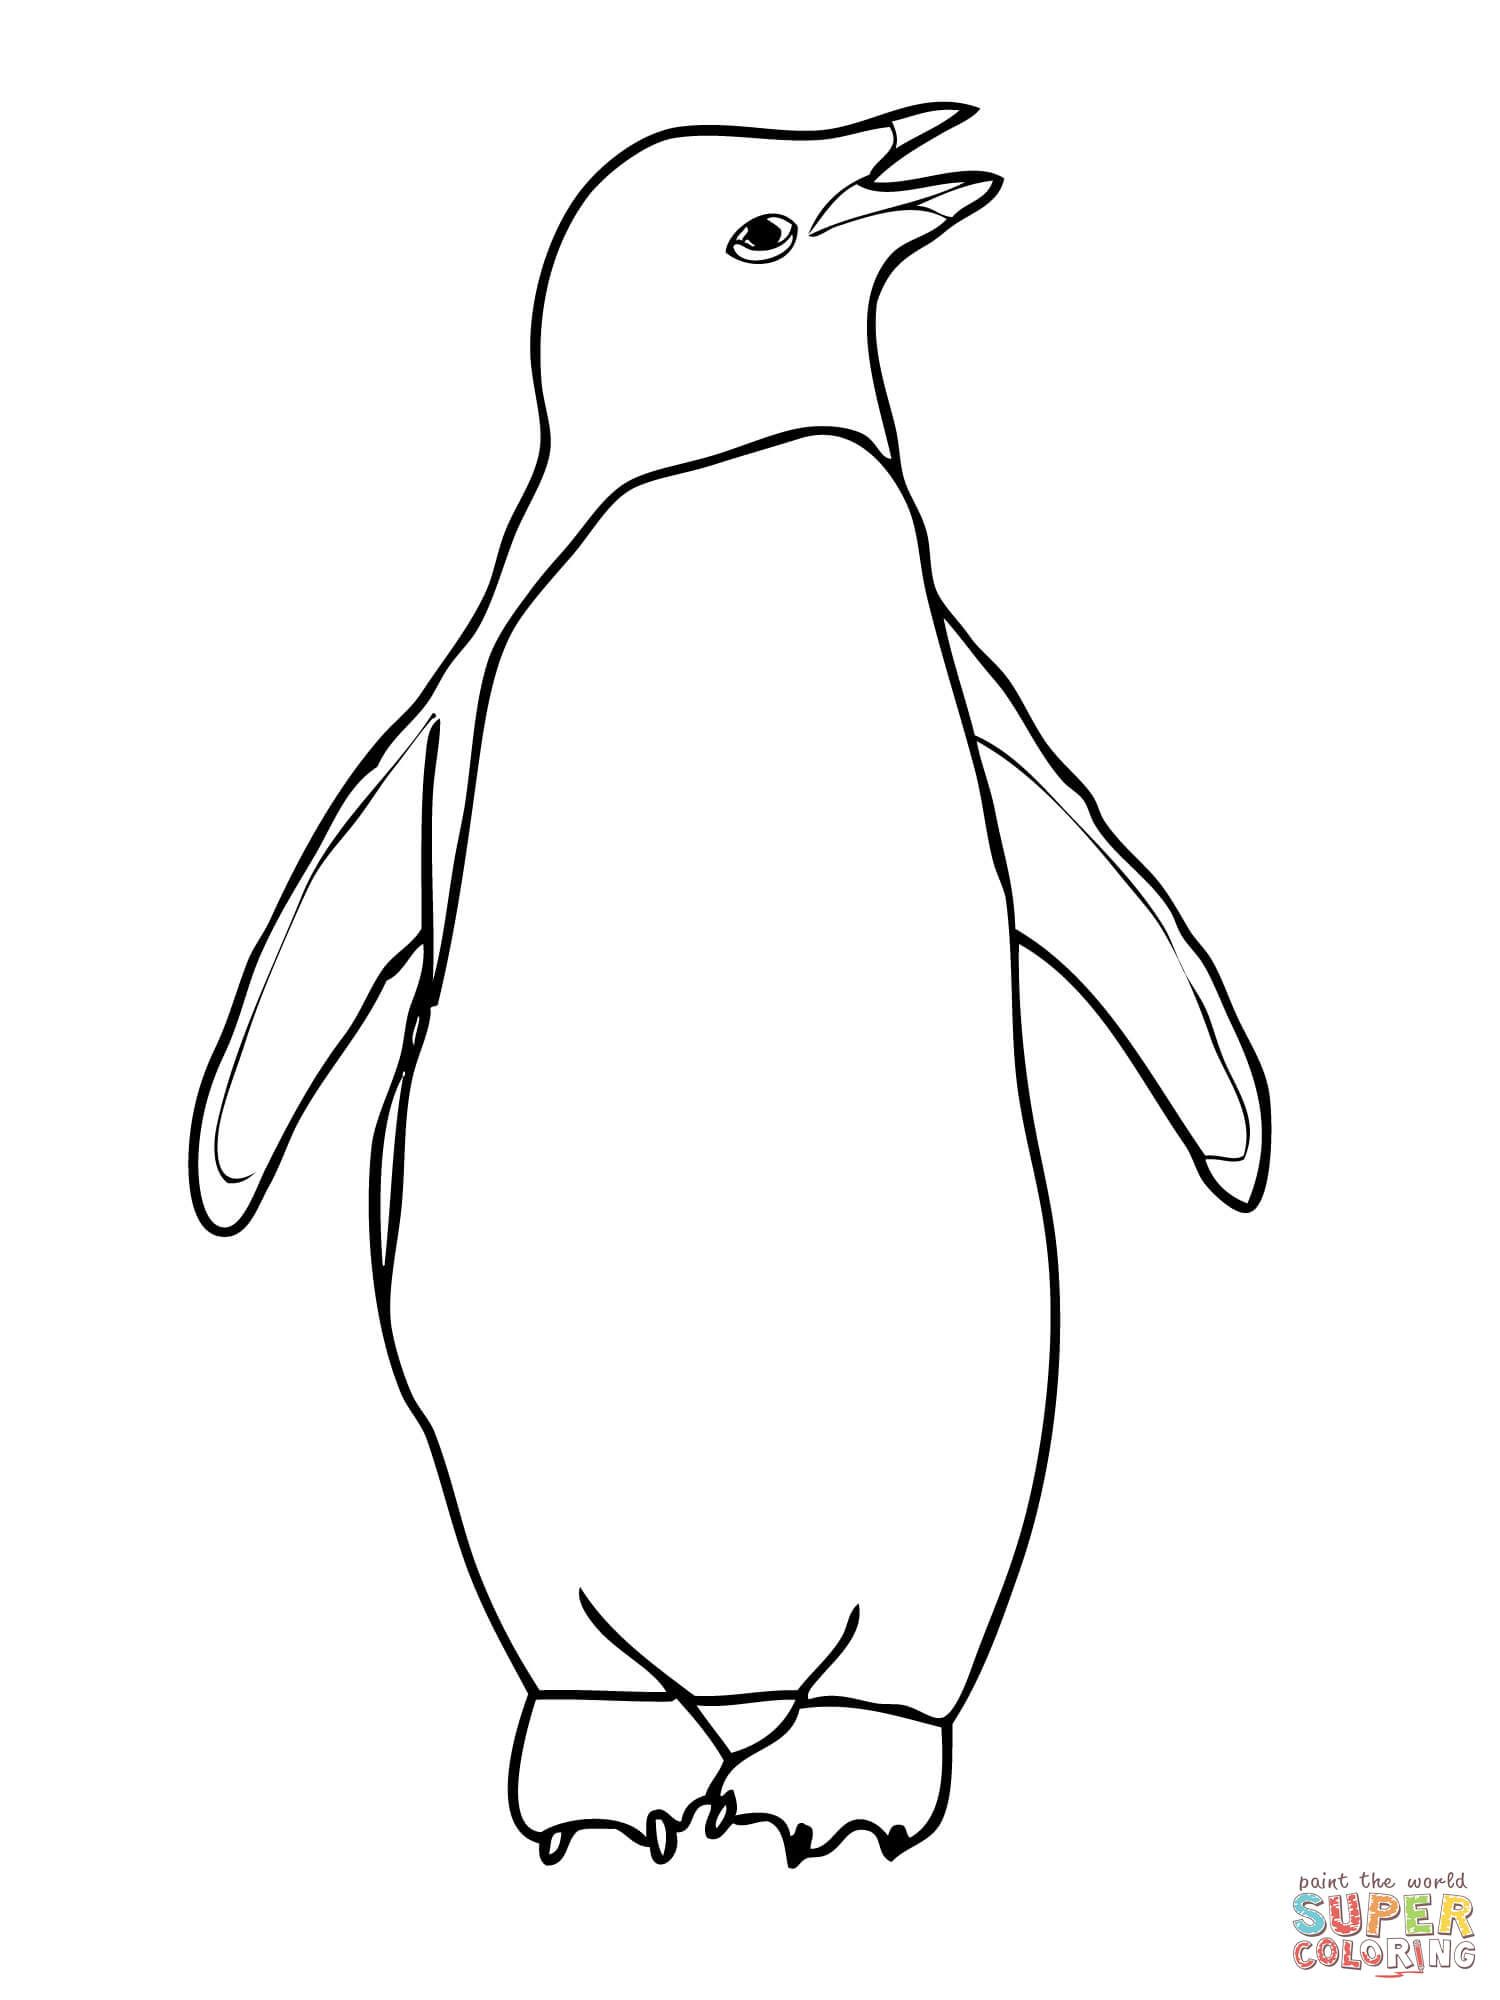 King Penguin Coloring Page At Getcolorings